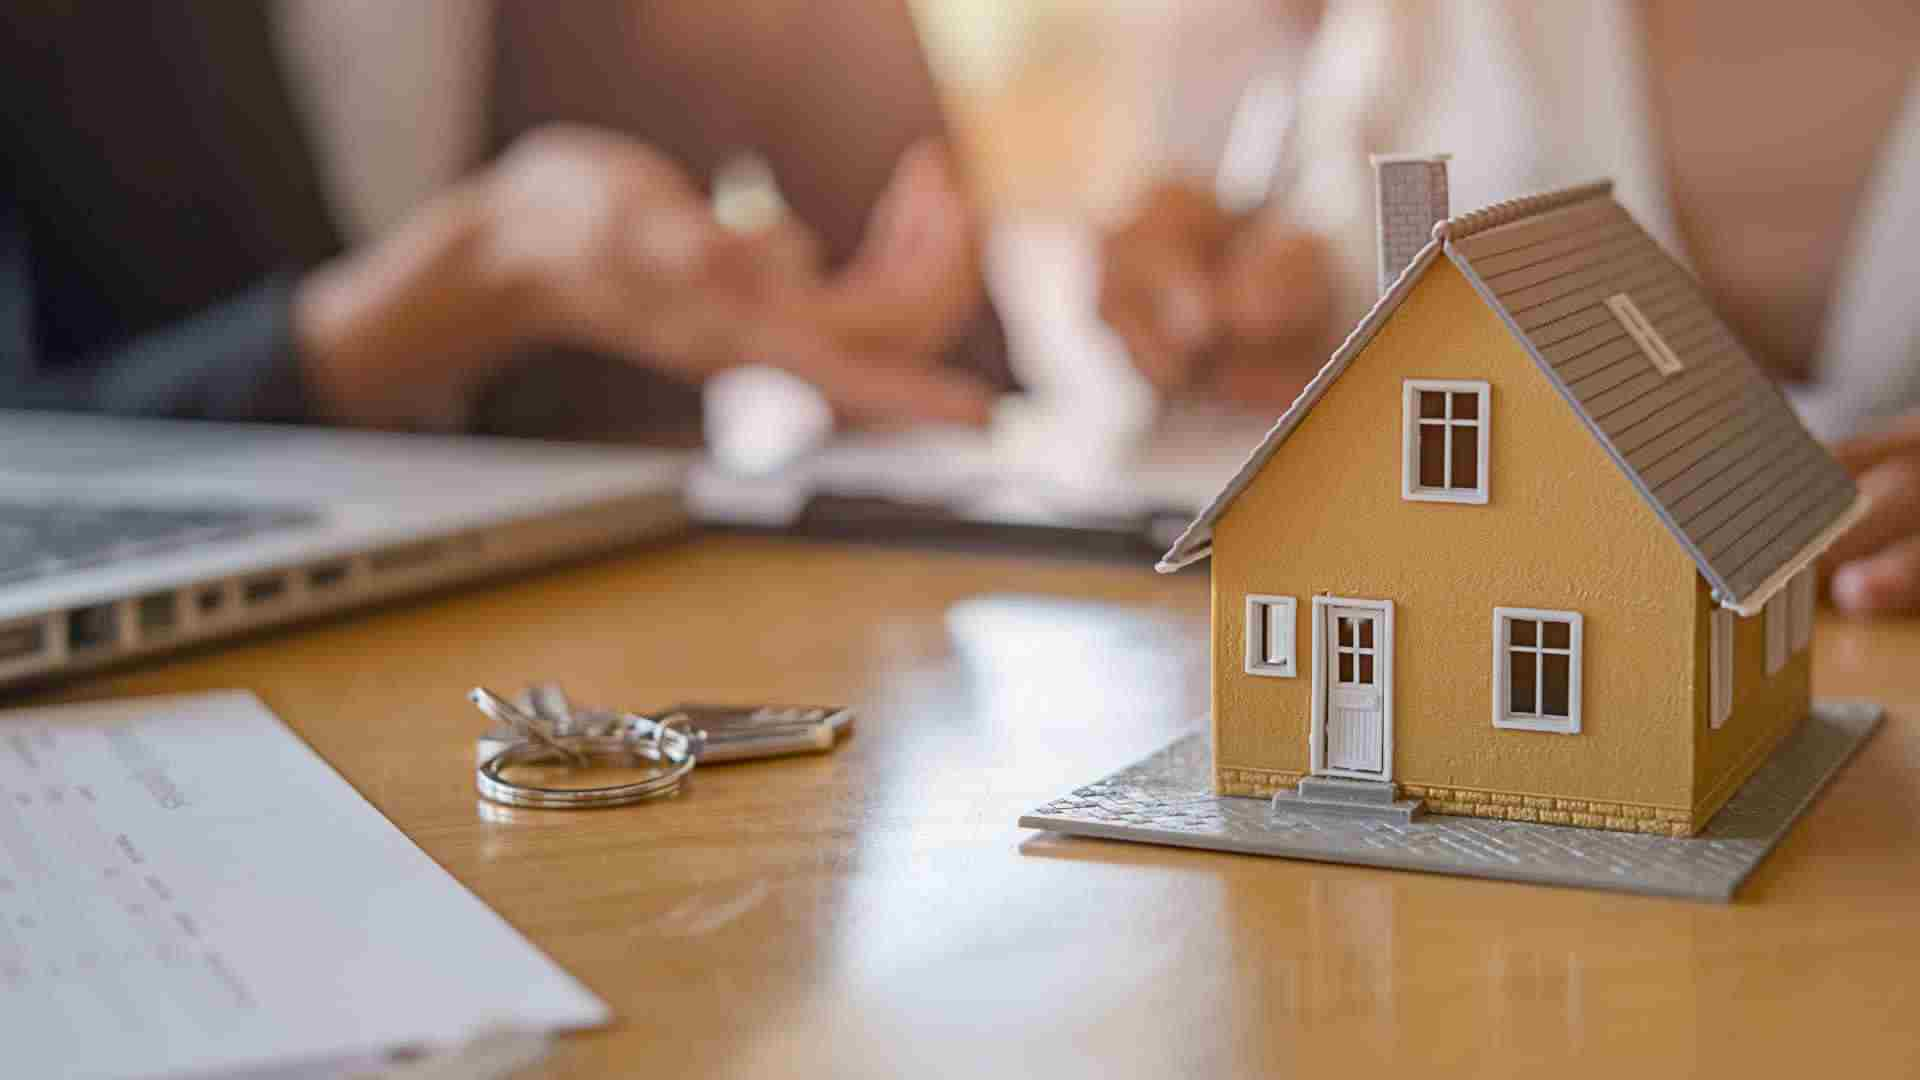 Survey shows Aussies see property as safest investment